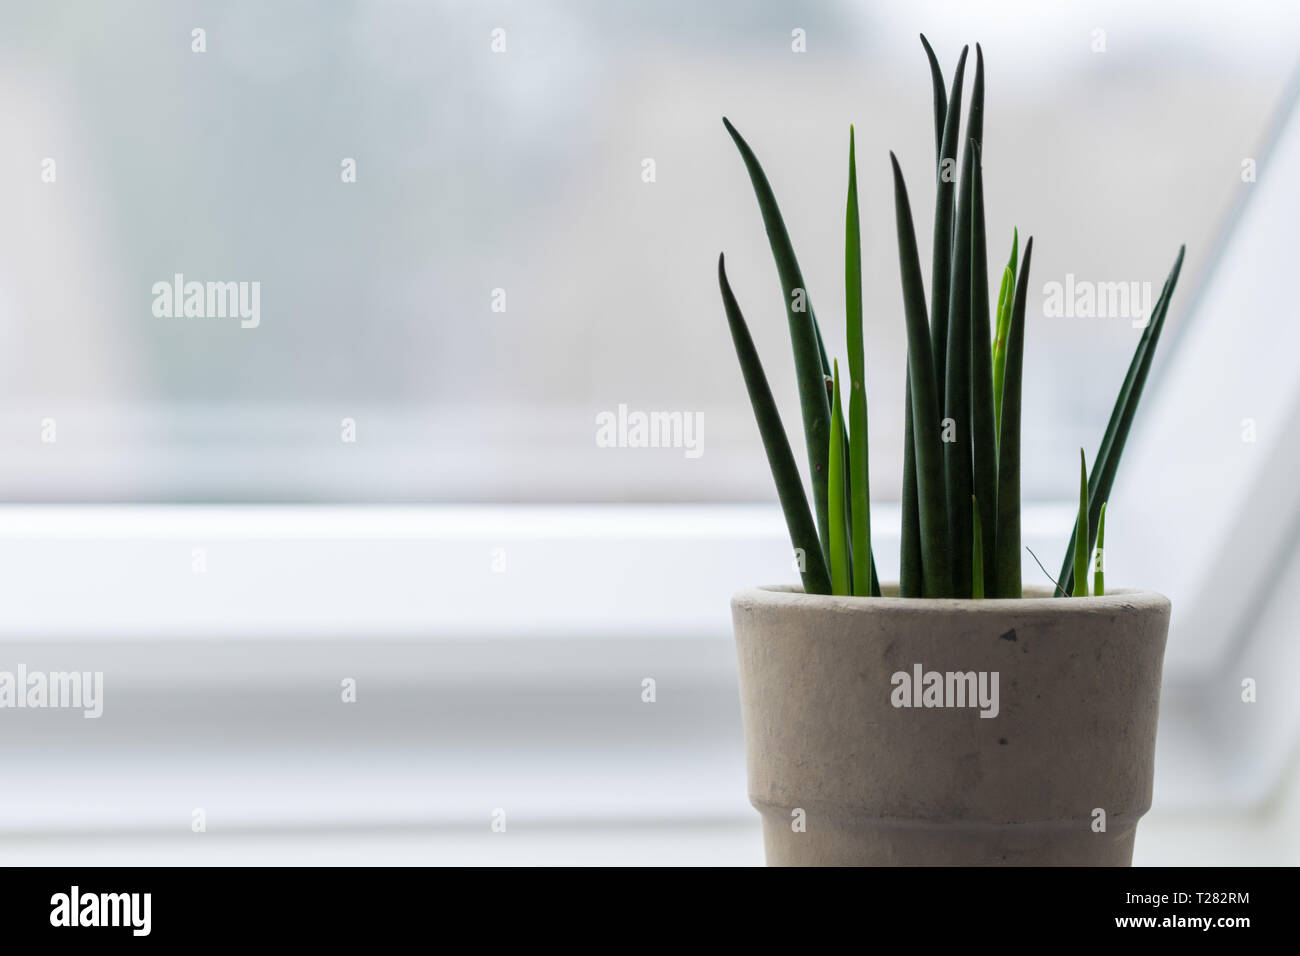 Houseplant - Mikado sansevieria - sanseveria - highkey Stock ... on one on me plant, spanish dagger plant, male marijuana plant, minima plant, caledonia plant, jolly green giant plant, giant sunflower seeds to plant, linden plant, grand duke plant, paw paw plant, jacob's coat plant, green bamboo plant, red hot plant, daruma plant, polyploid marijuana plant, forever plant, sketch plant, schwag weed plant, parts of a marijuana plant, holly plant,